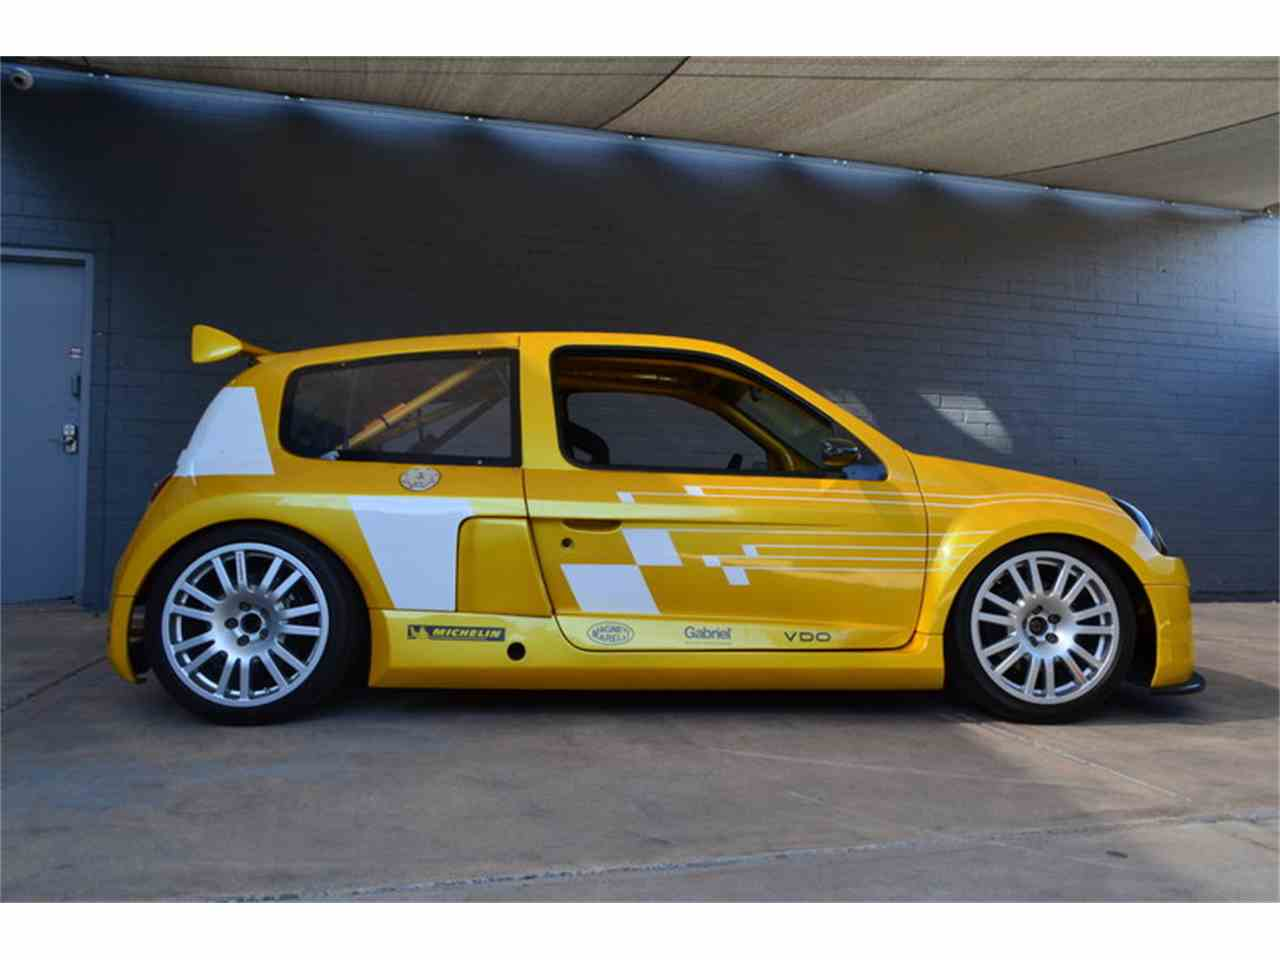 2003 renault clio v6 trophy for sale cc 970582. Black Bedroom Furniture Sets. Home Design Ideas